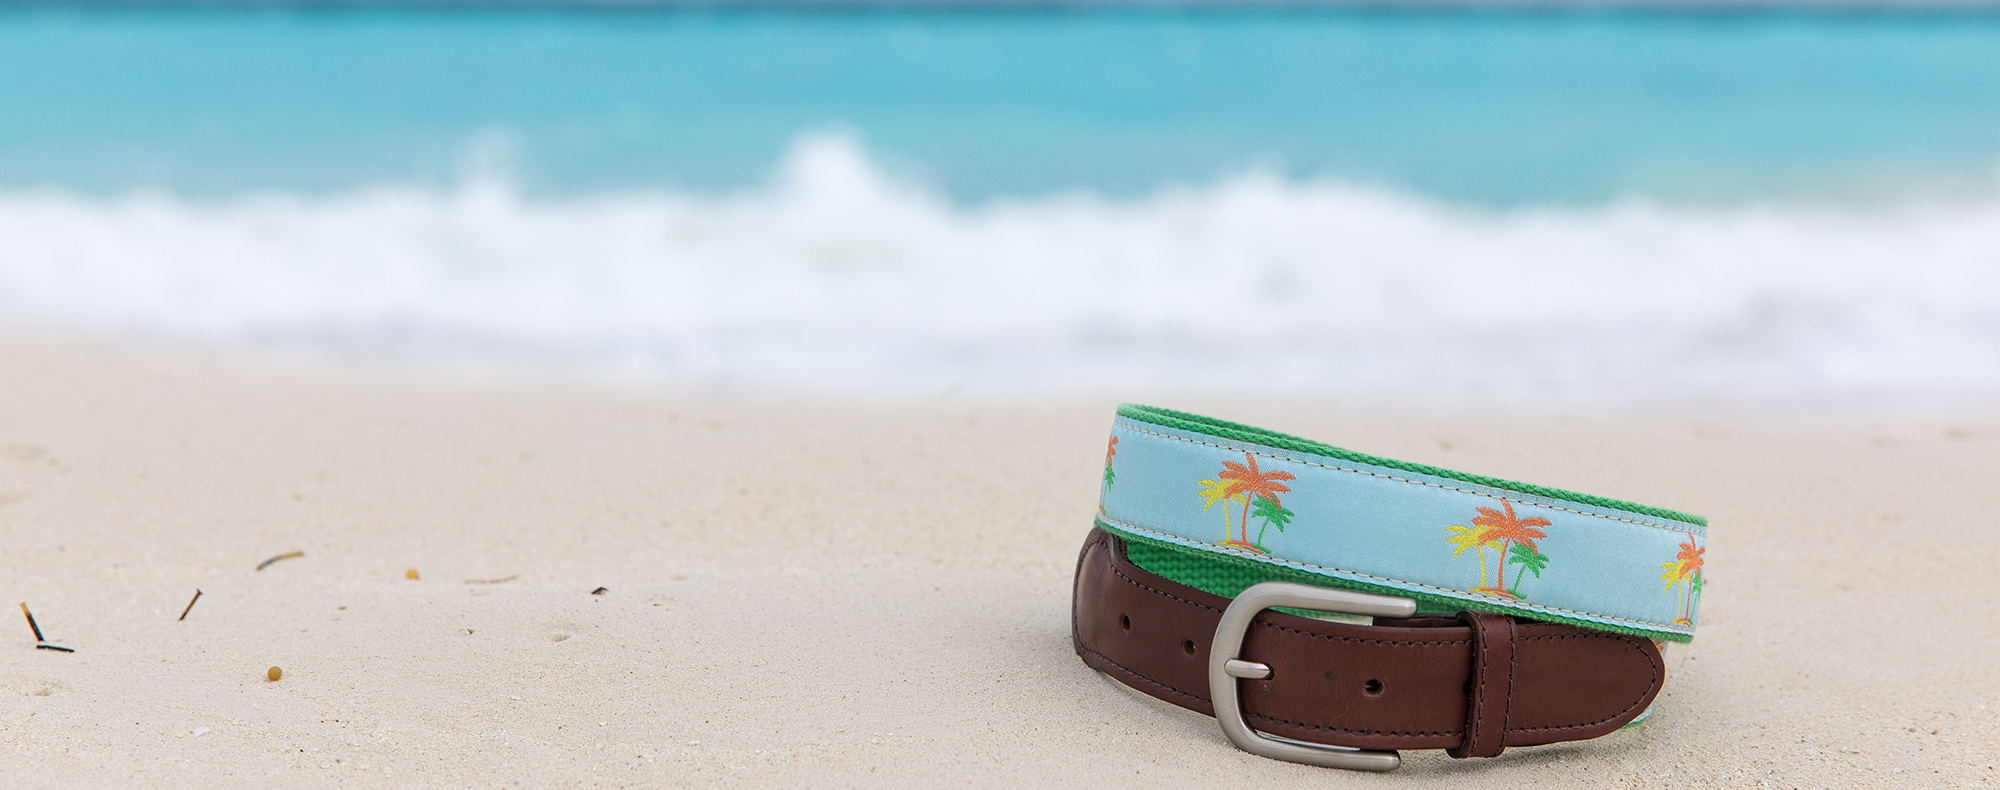 Belt on Beach